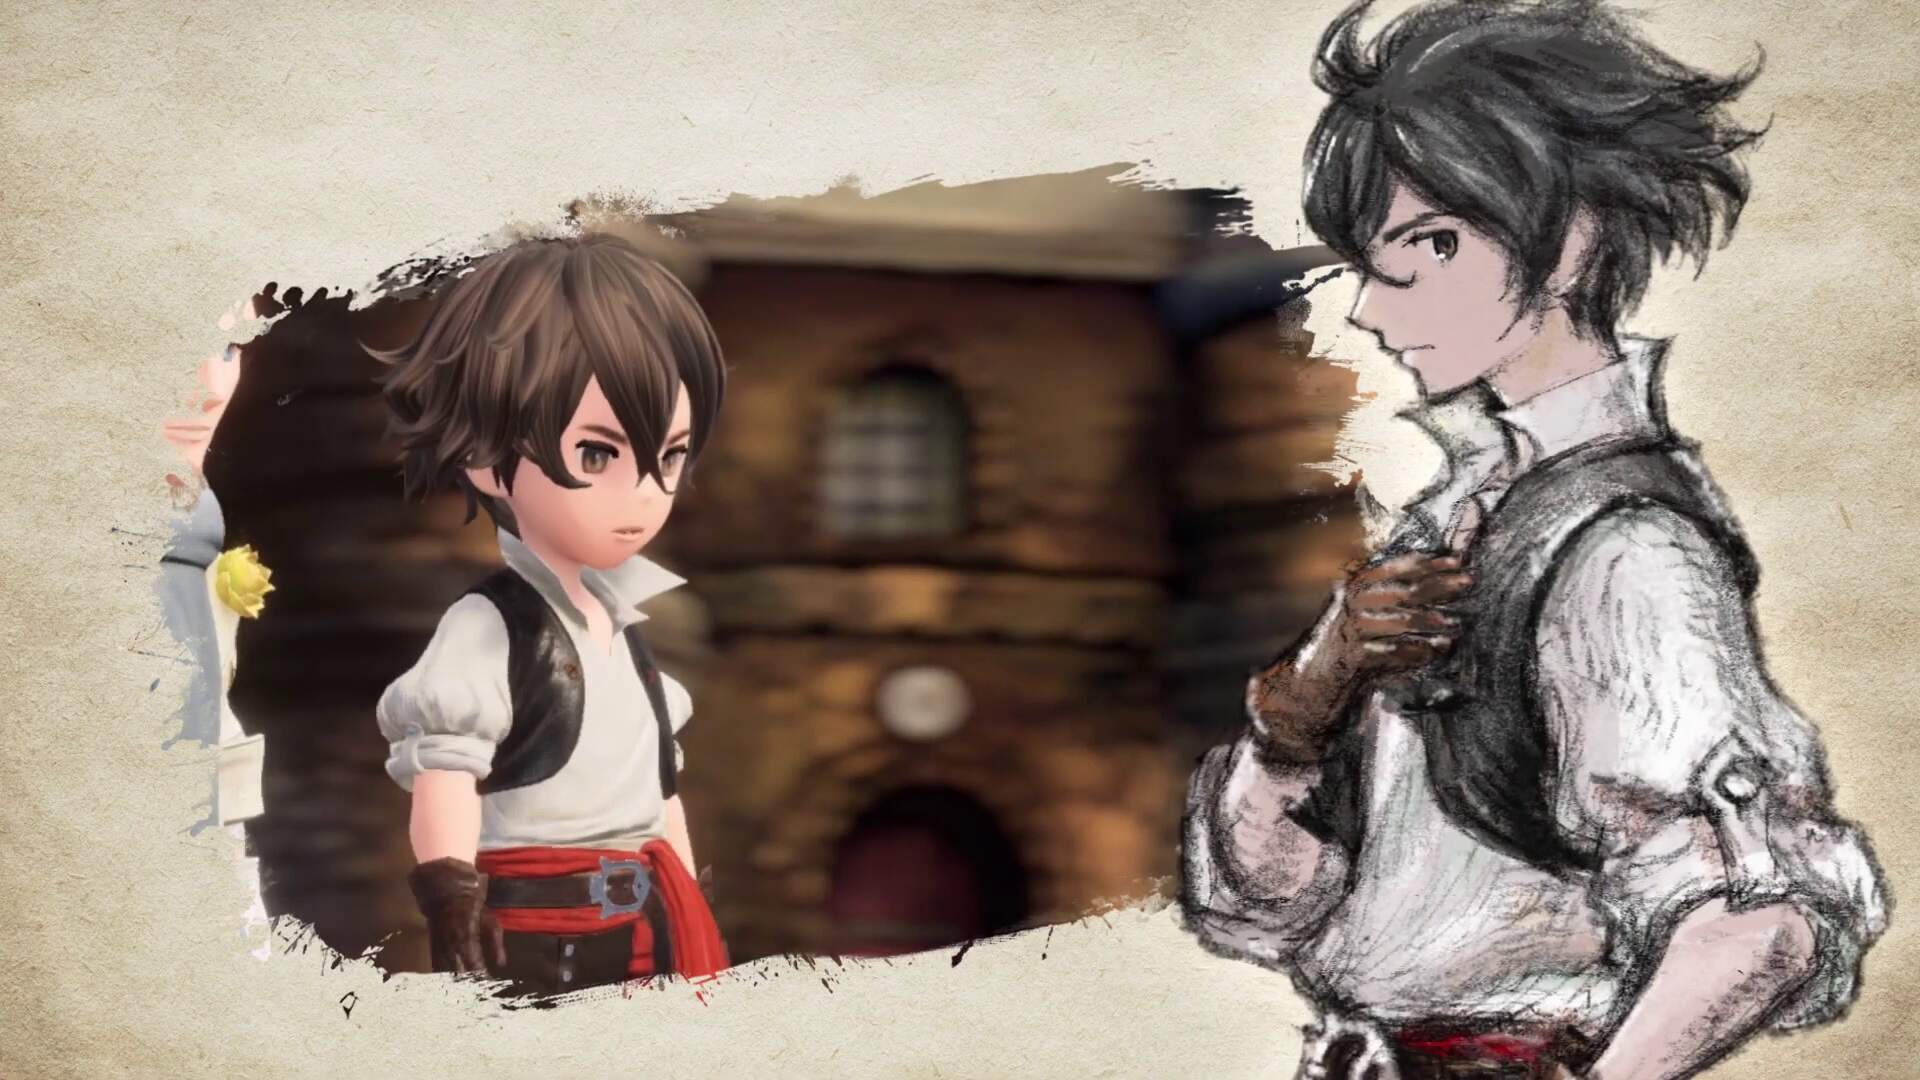 Bravely Default 2 Demo is Out Right Now, Full Game Set for 2020